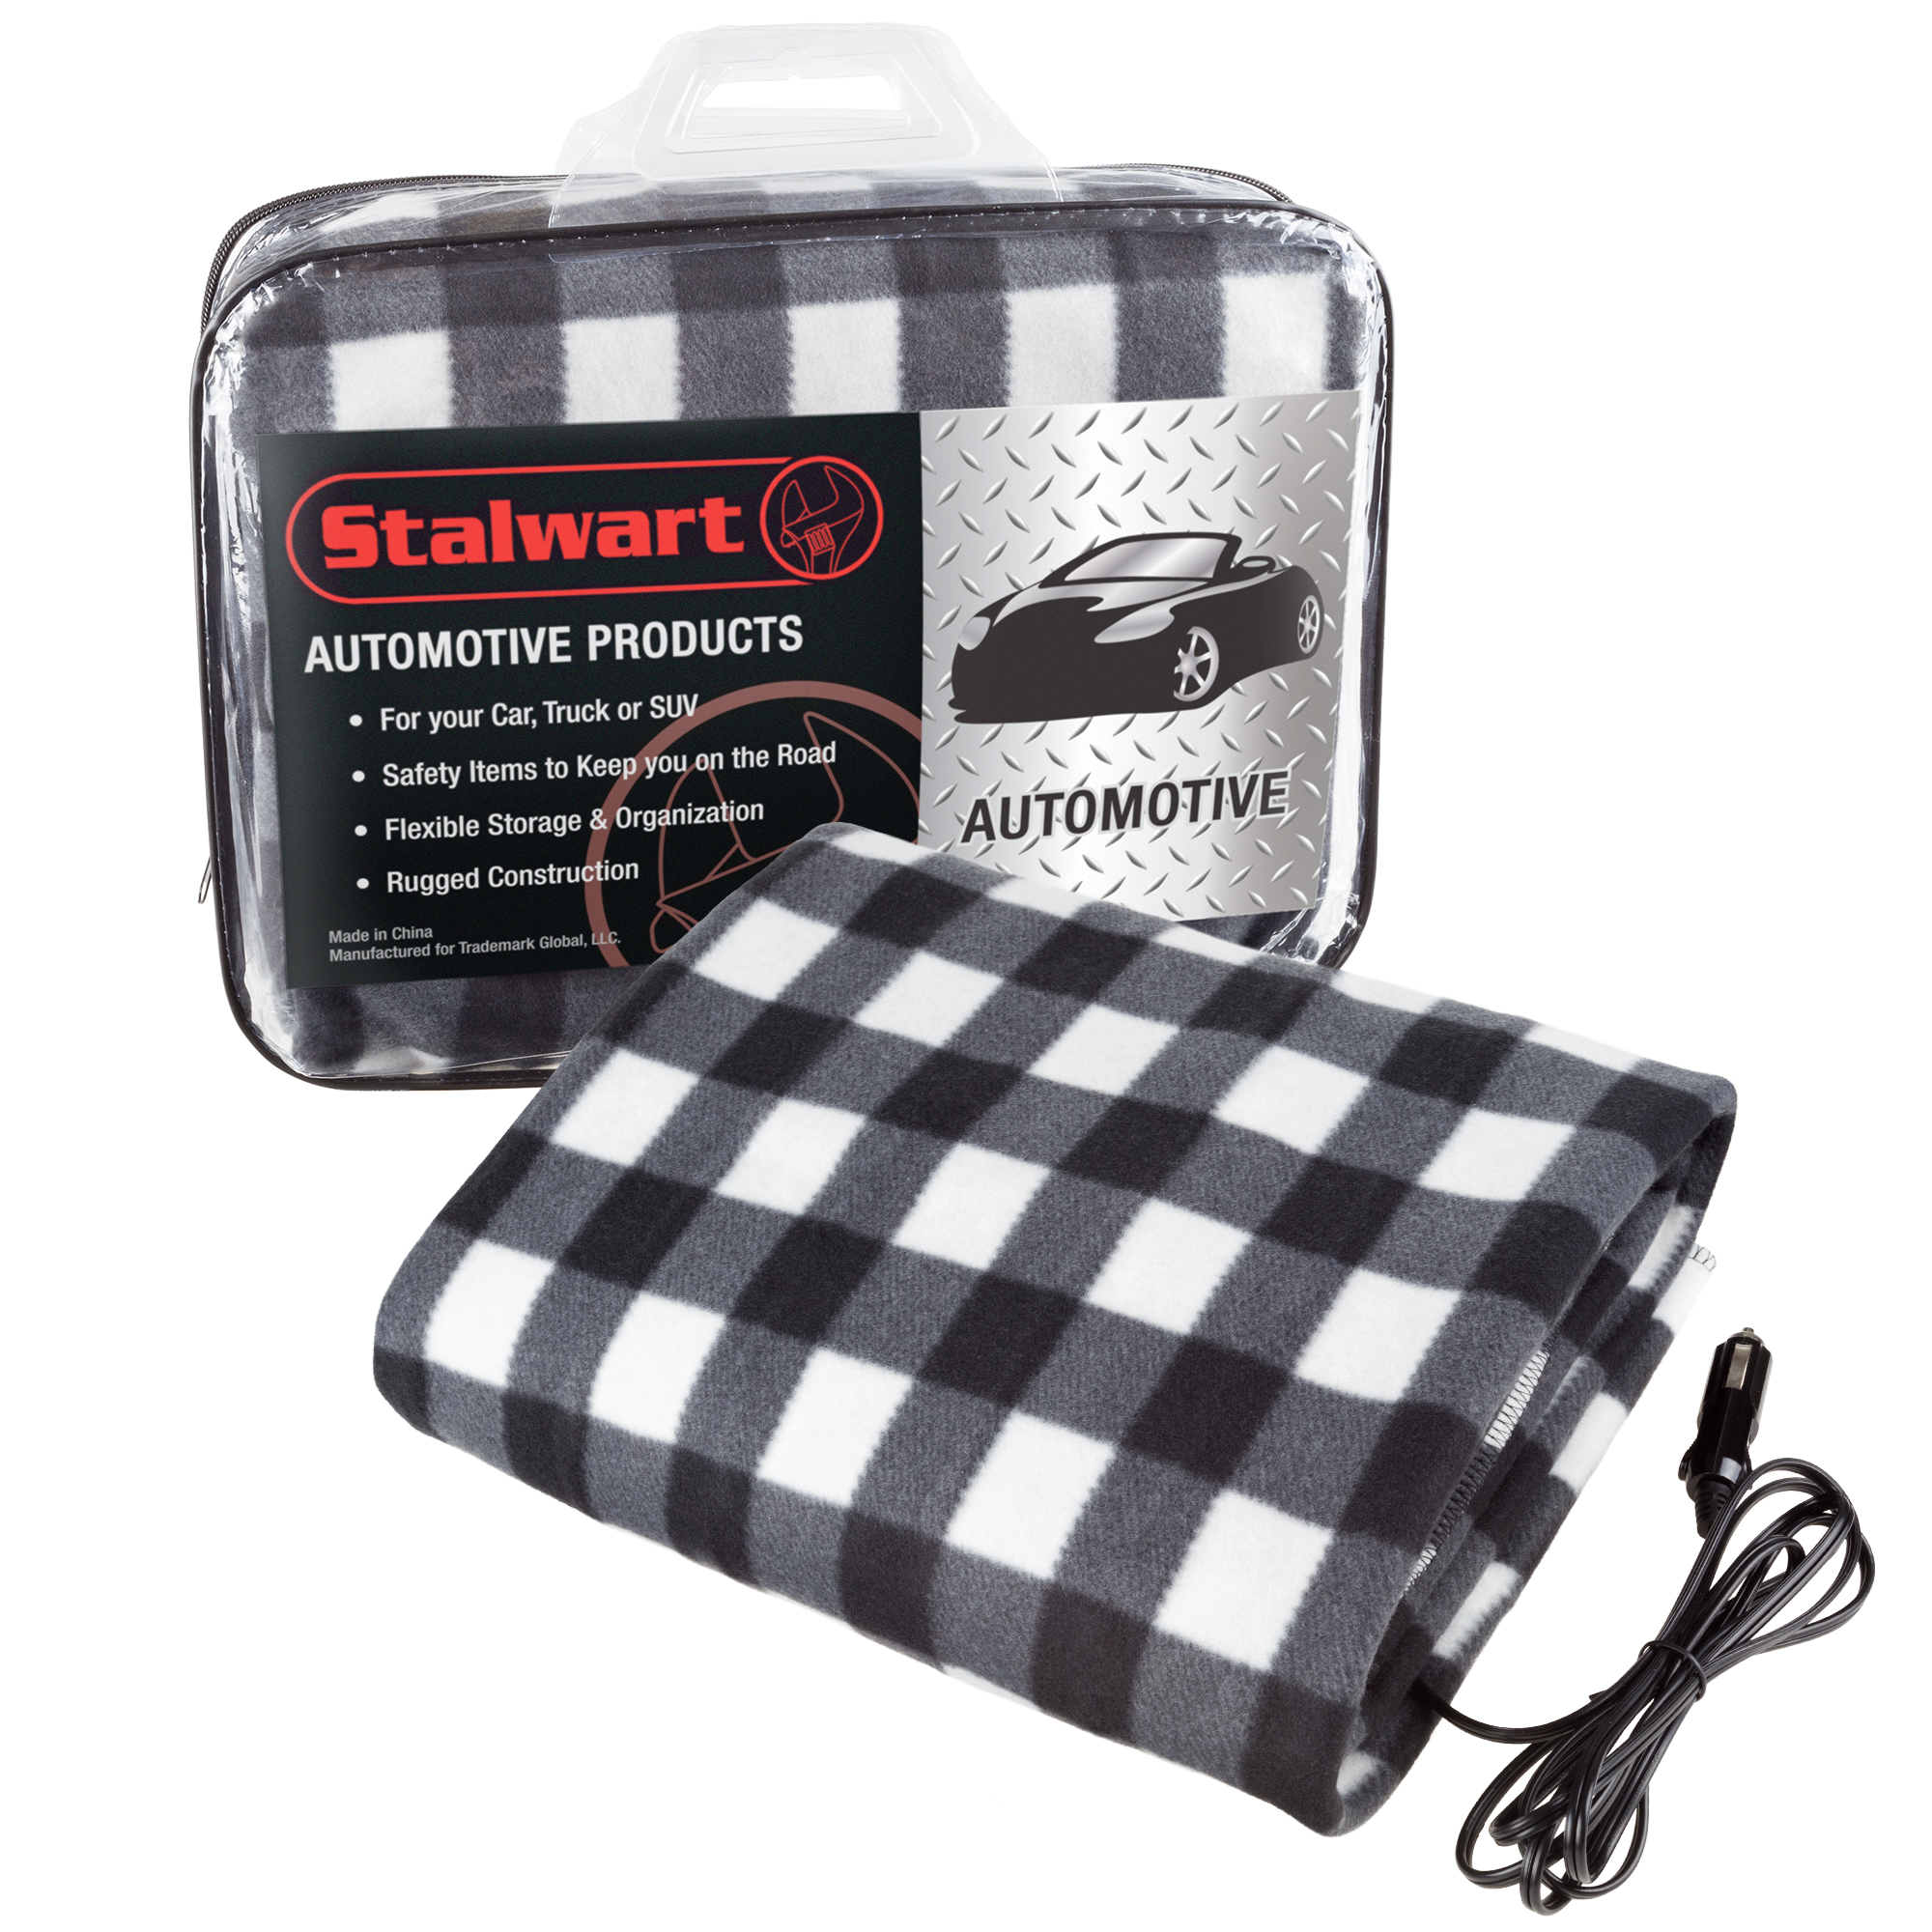 Stalwart Electric Car Blanket at Walmart